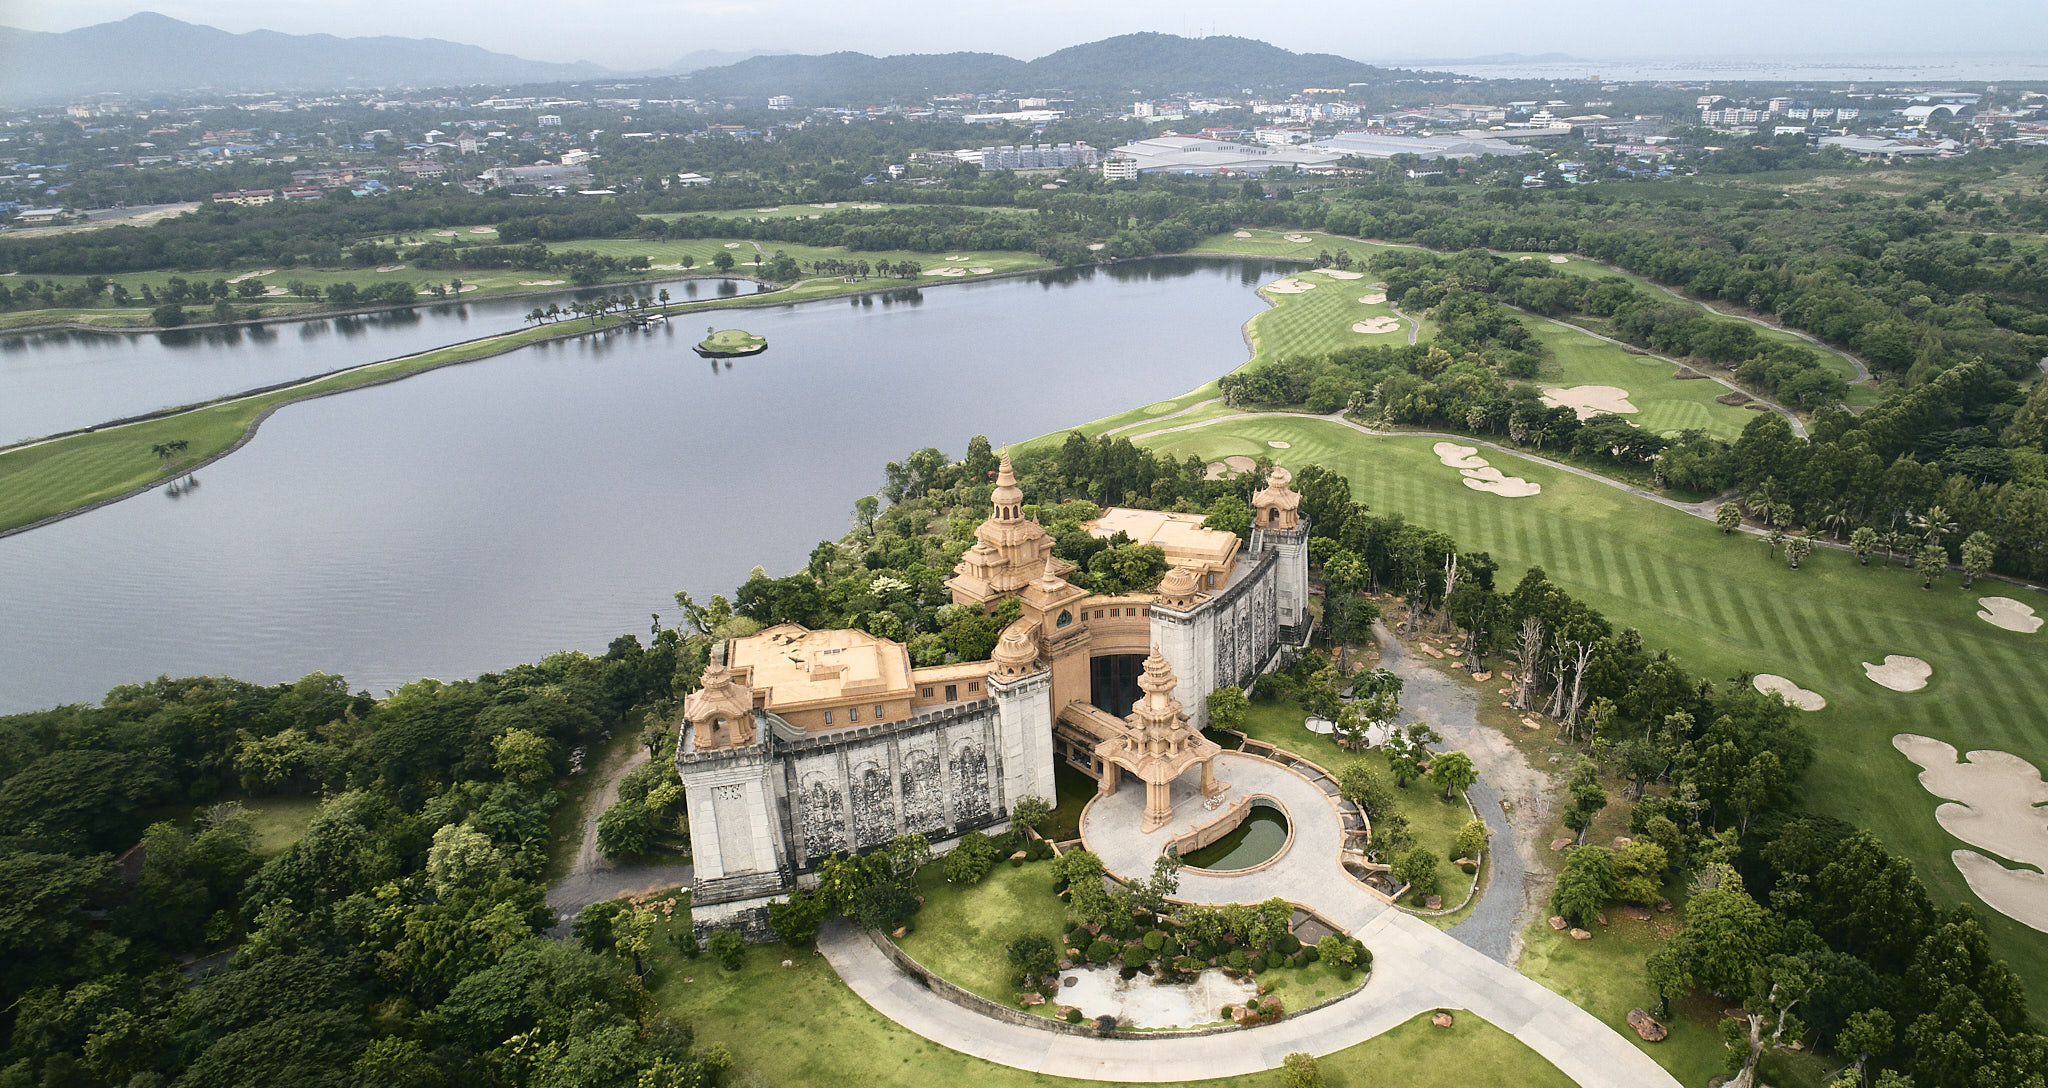 The massive castle overviewing the entire Amata Spring Golf Club owned by the Chon Buri industrial park landlord